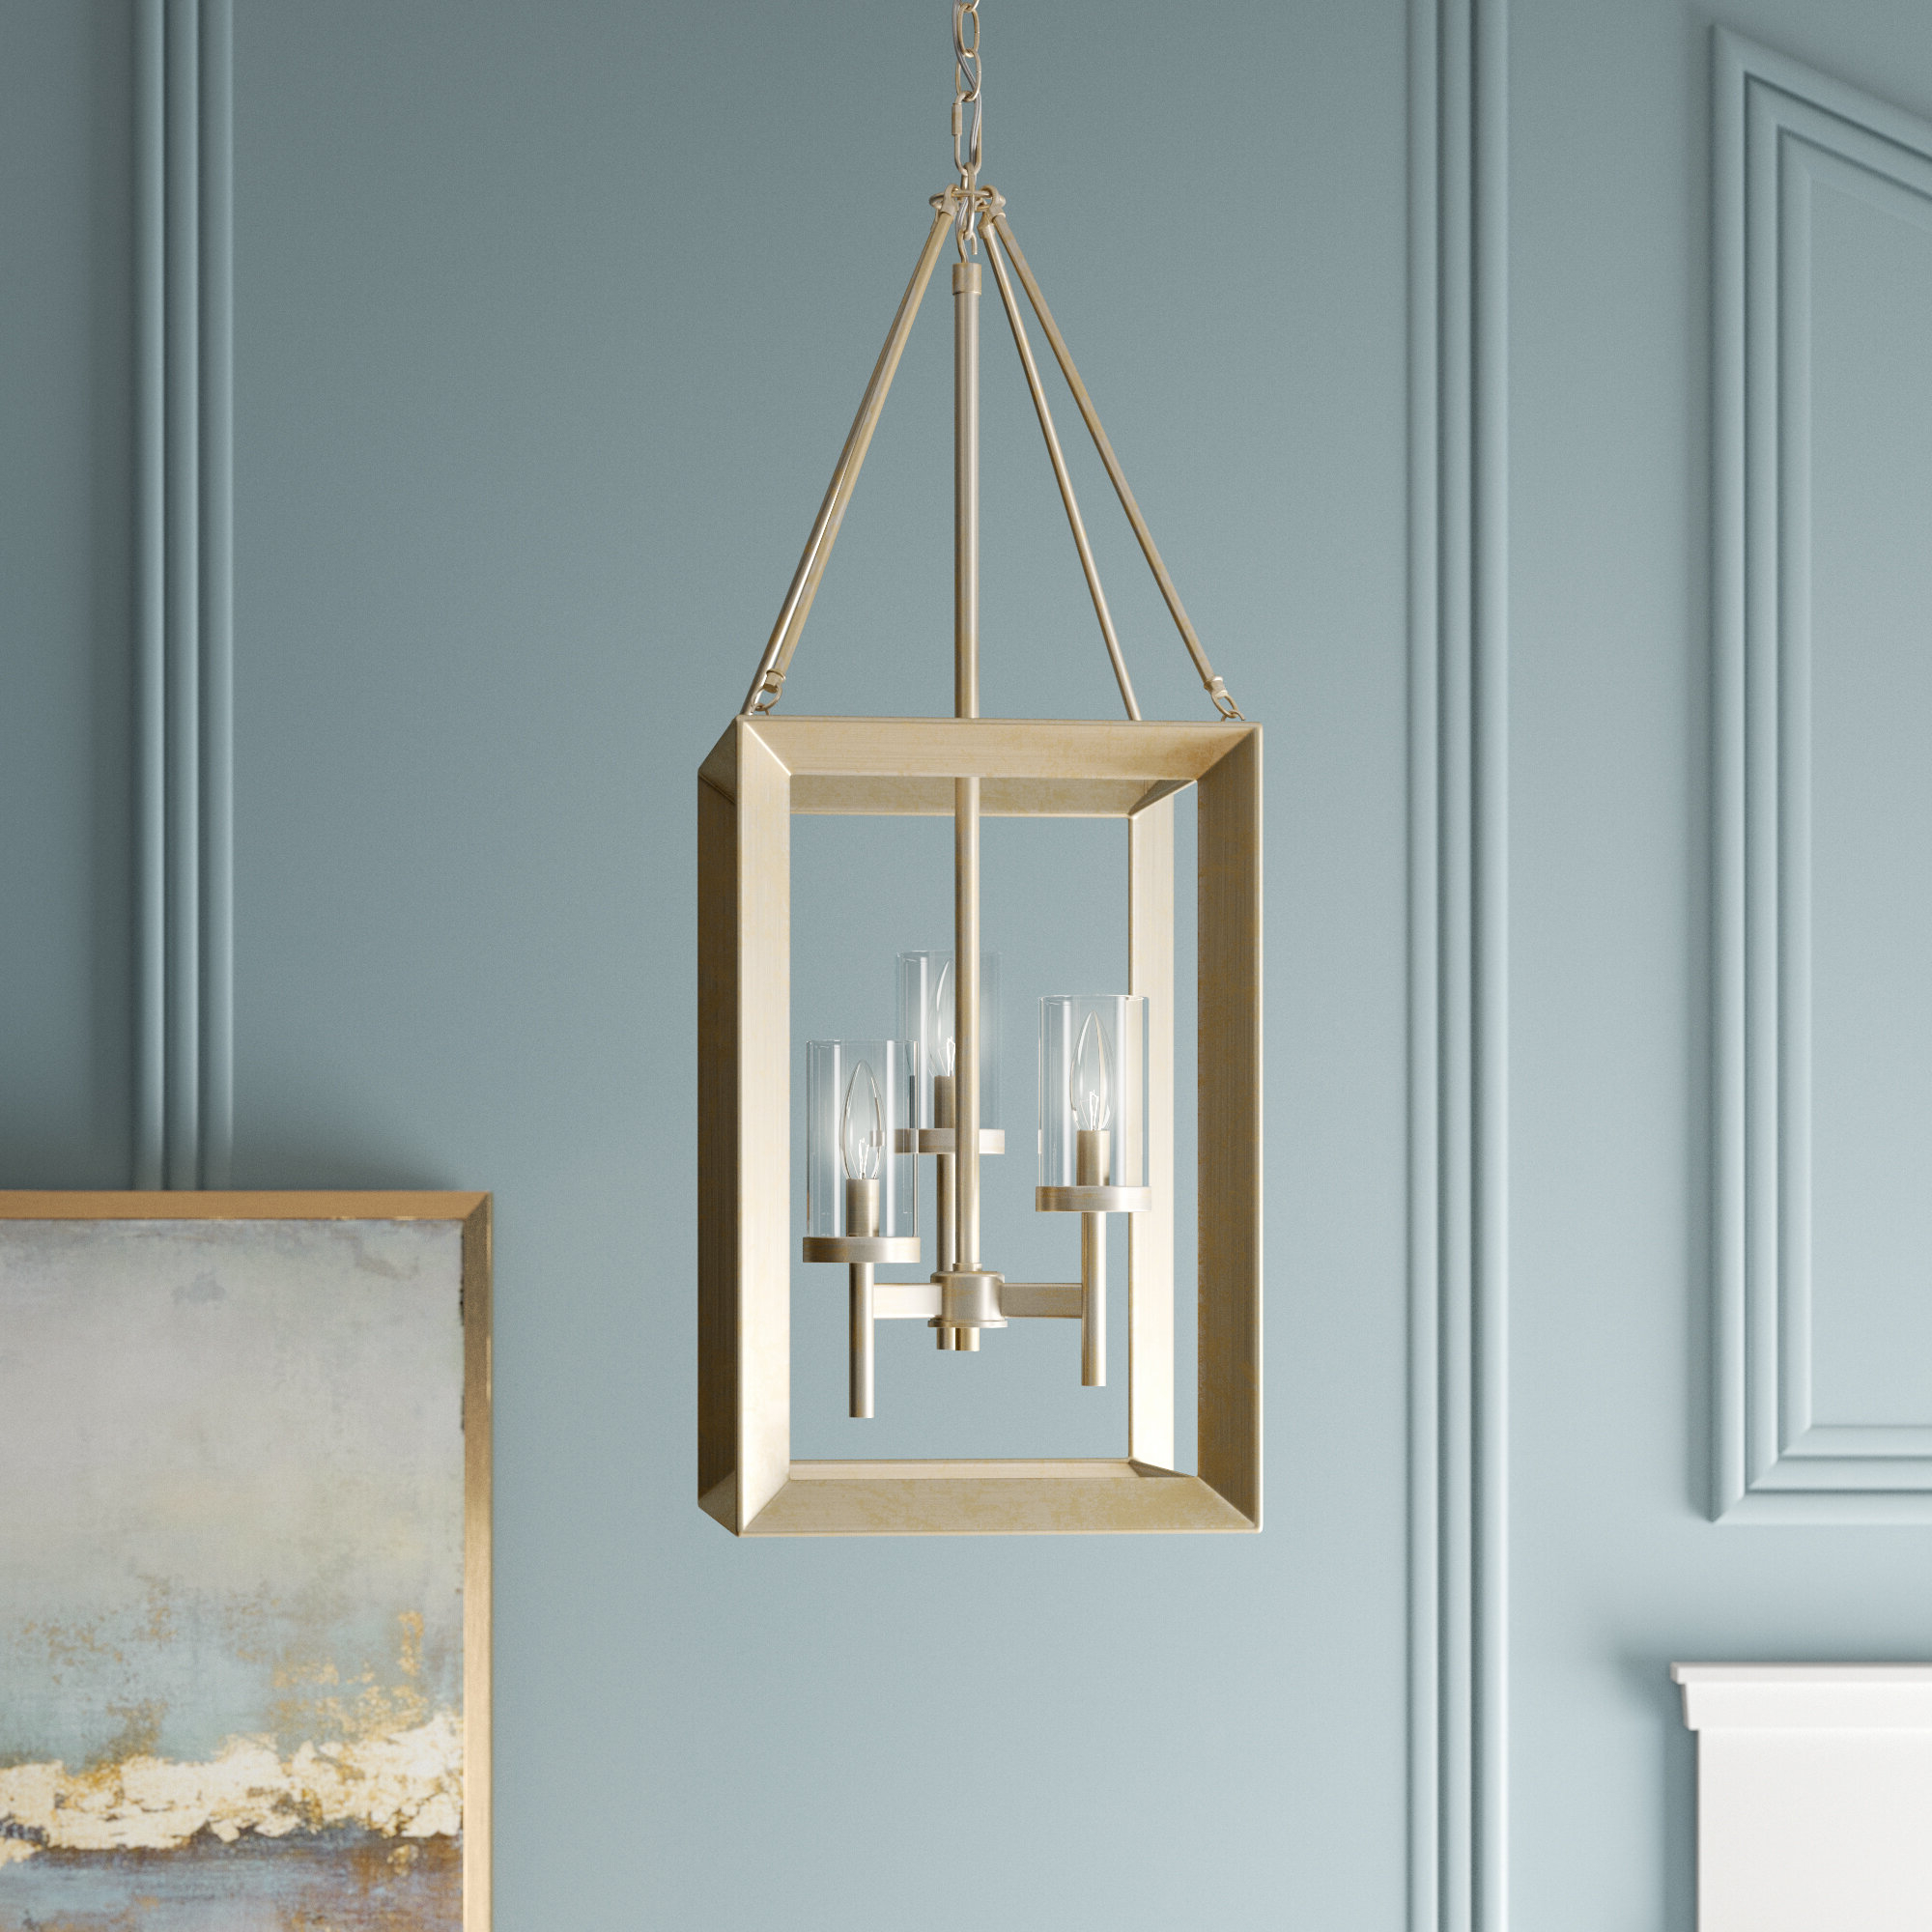 Best And Newest Thorne 6 Light Lantern Square / Rectangle Pendants Regarding Thorne 3 Light Lantern Square / Rectangle Pendant & Reviews (View 2 of 20)